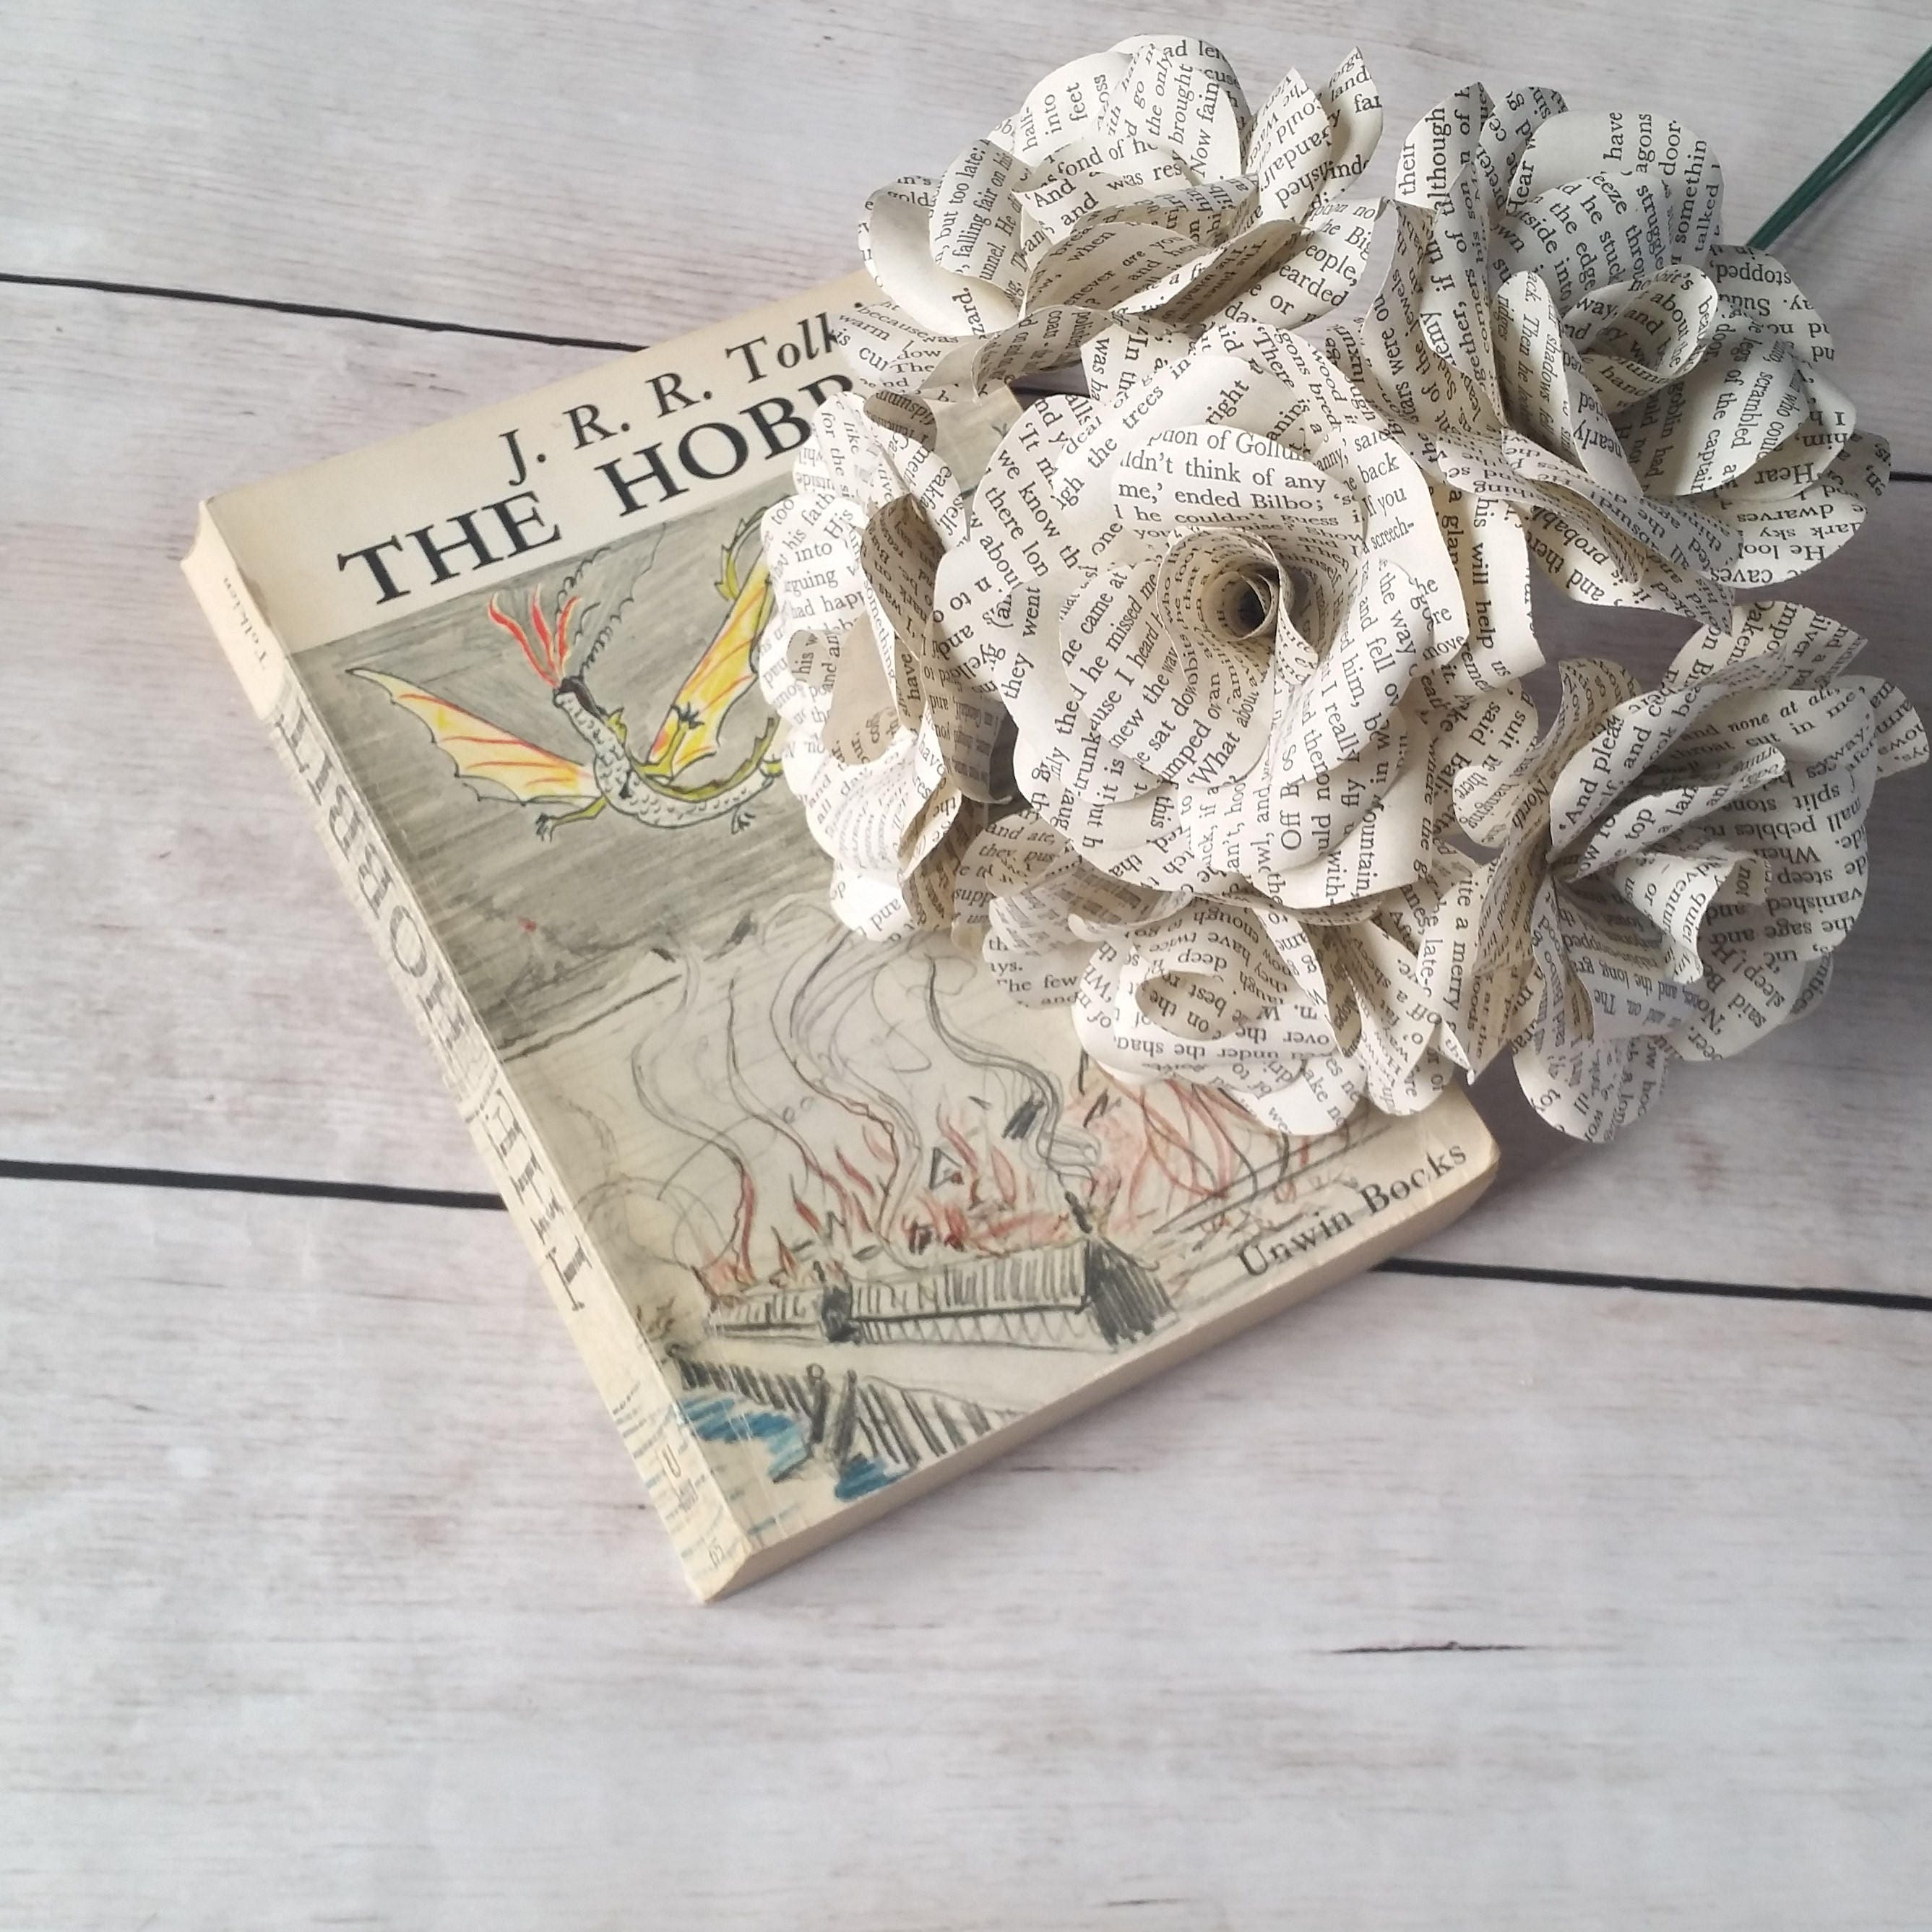 6 x The Hobbit Paper Roses, Book Page Paper Flower Roses, Handmade ...